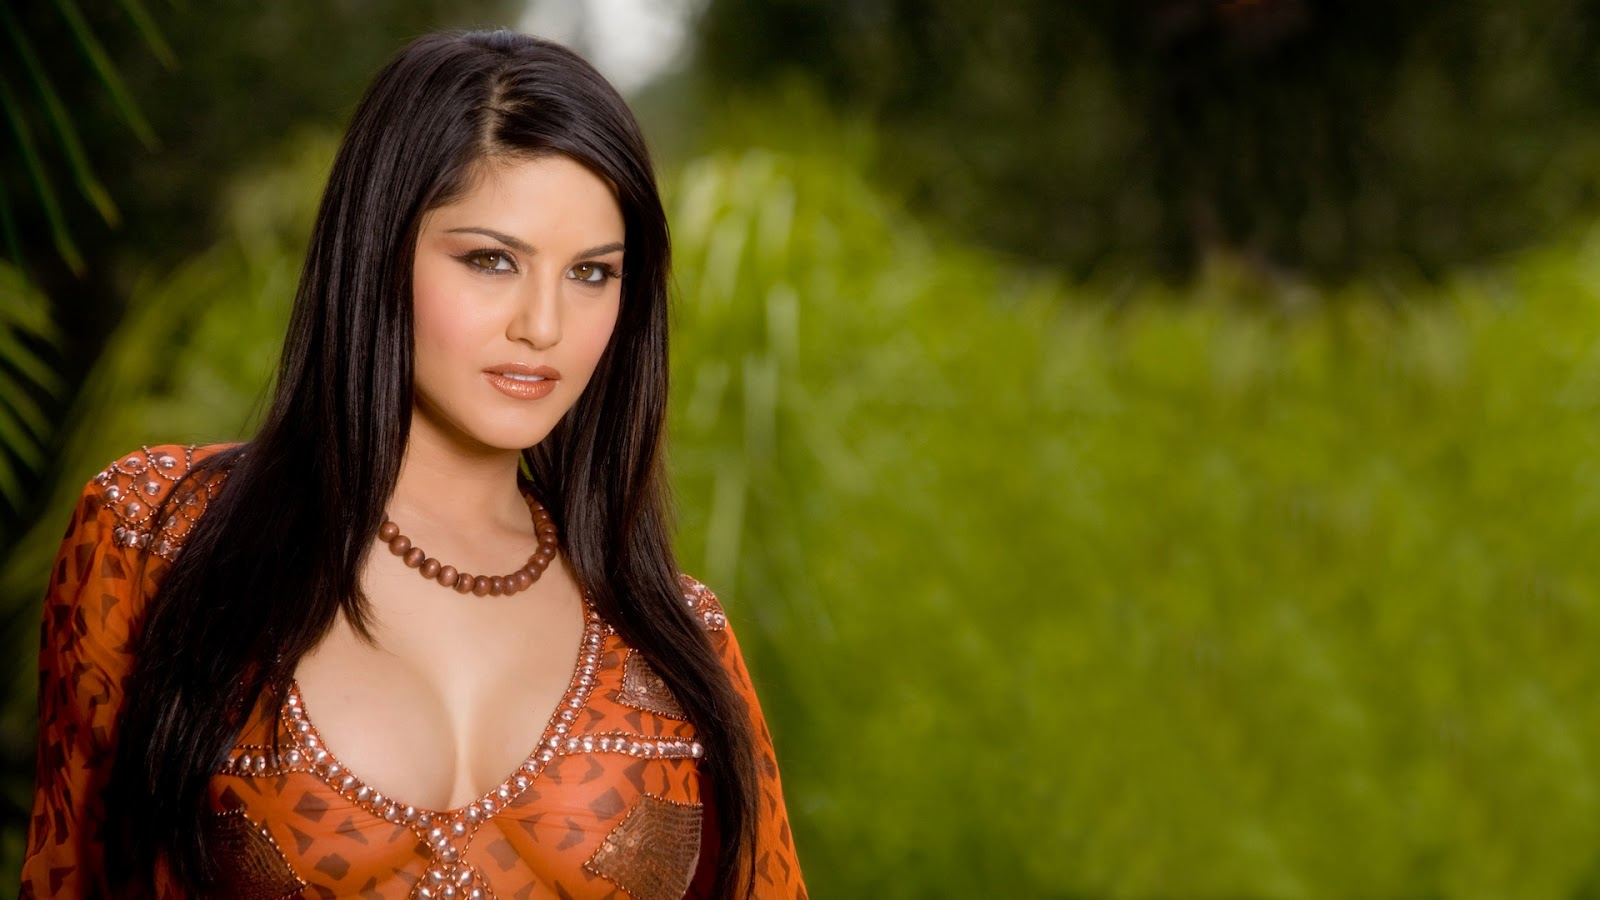 Hot wallpapers sunny leone non nude hot full hd wallpapers - Sunny leone full hd wallpaper ...